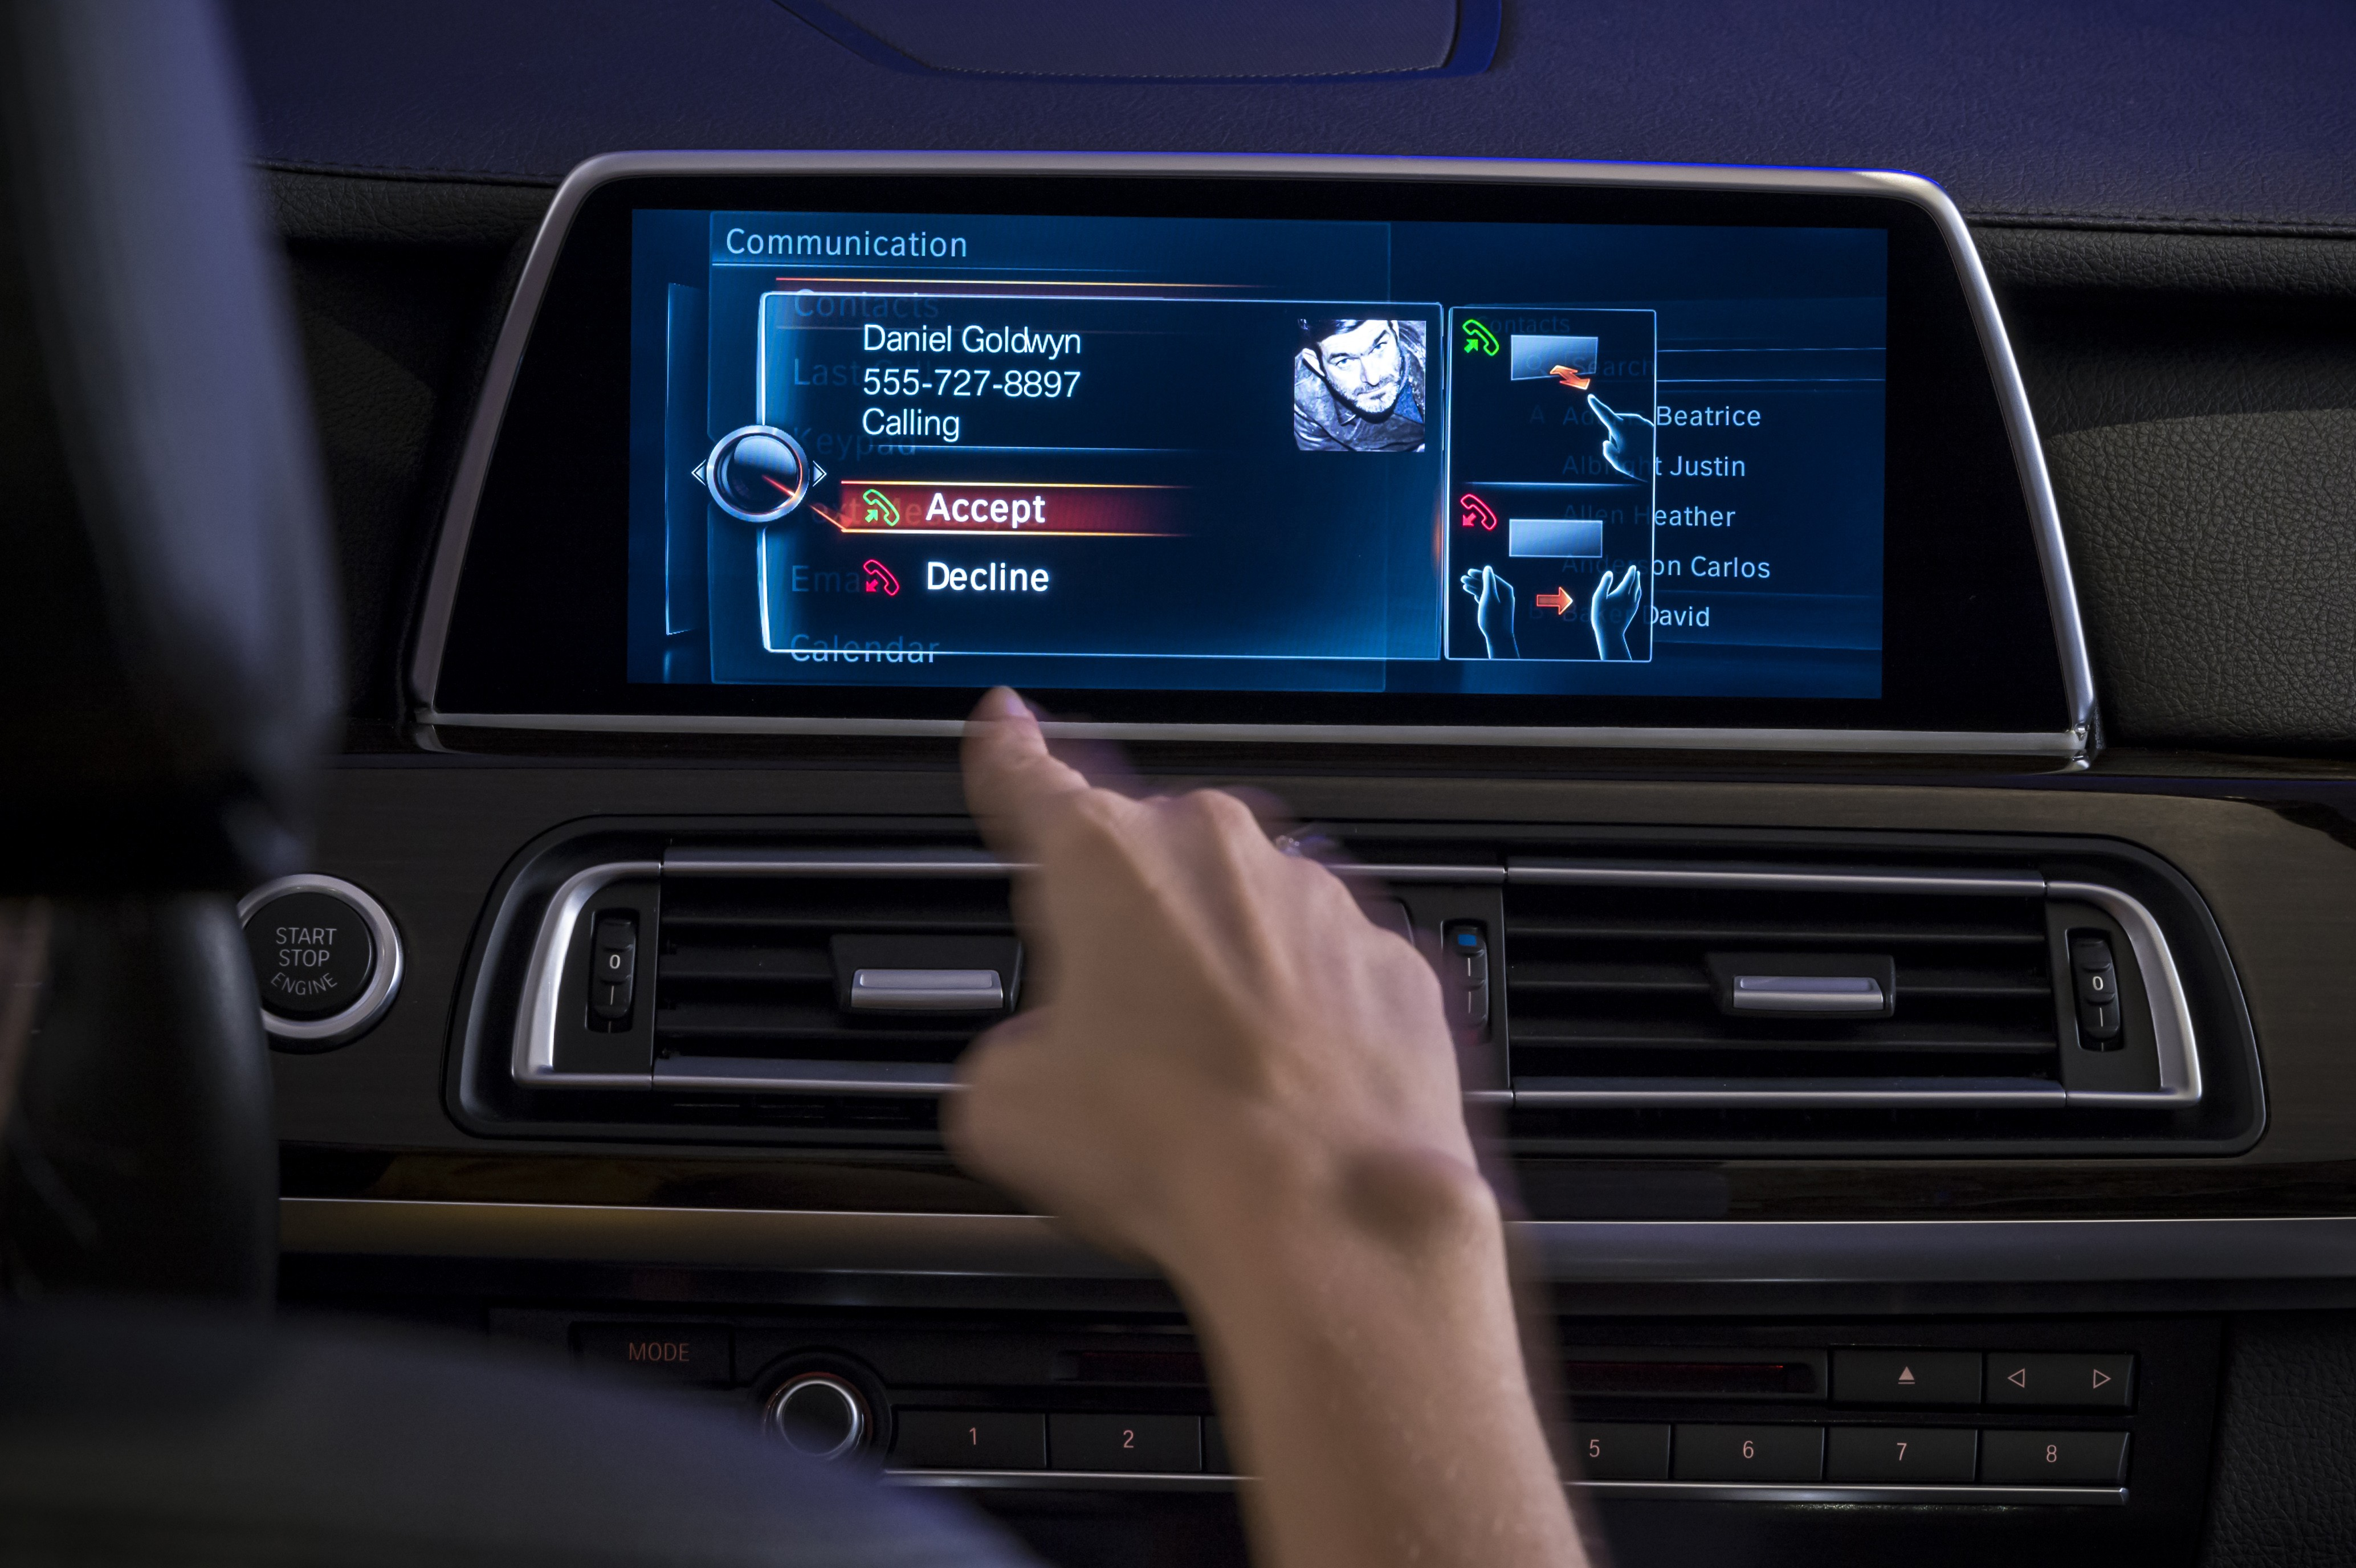 Next Gen iDrive with Gesture Control and Touchscreen Unveiled at